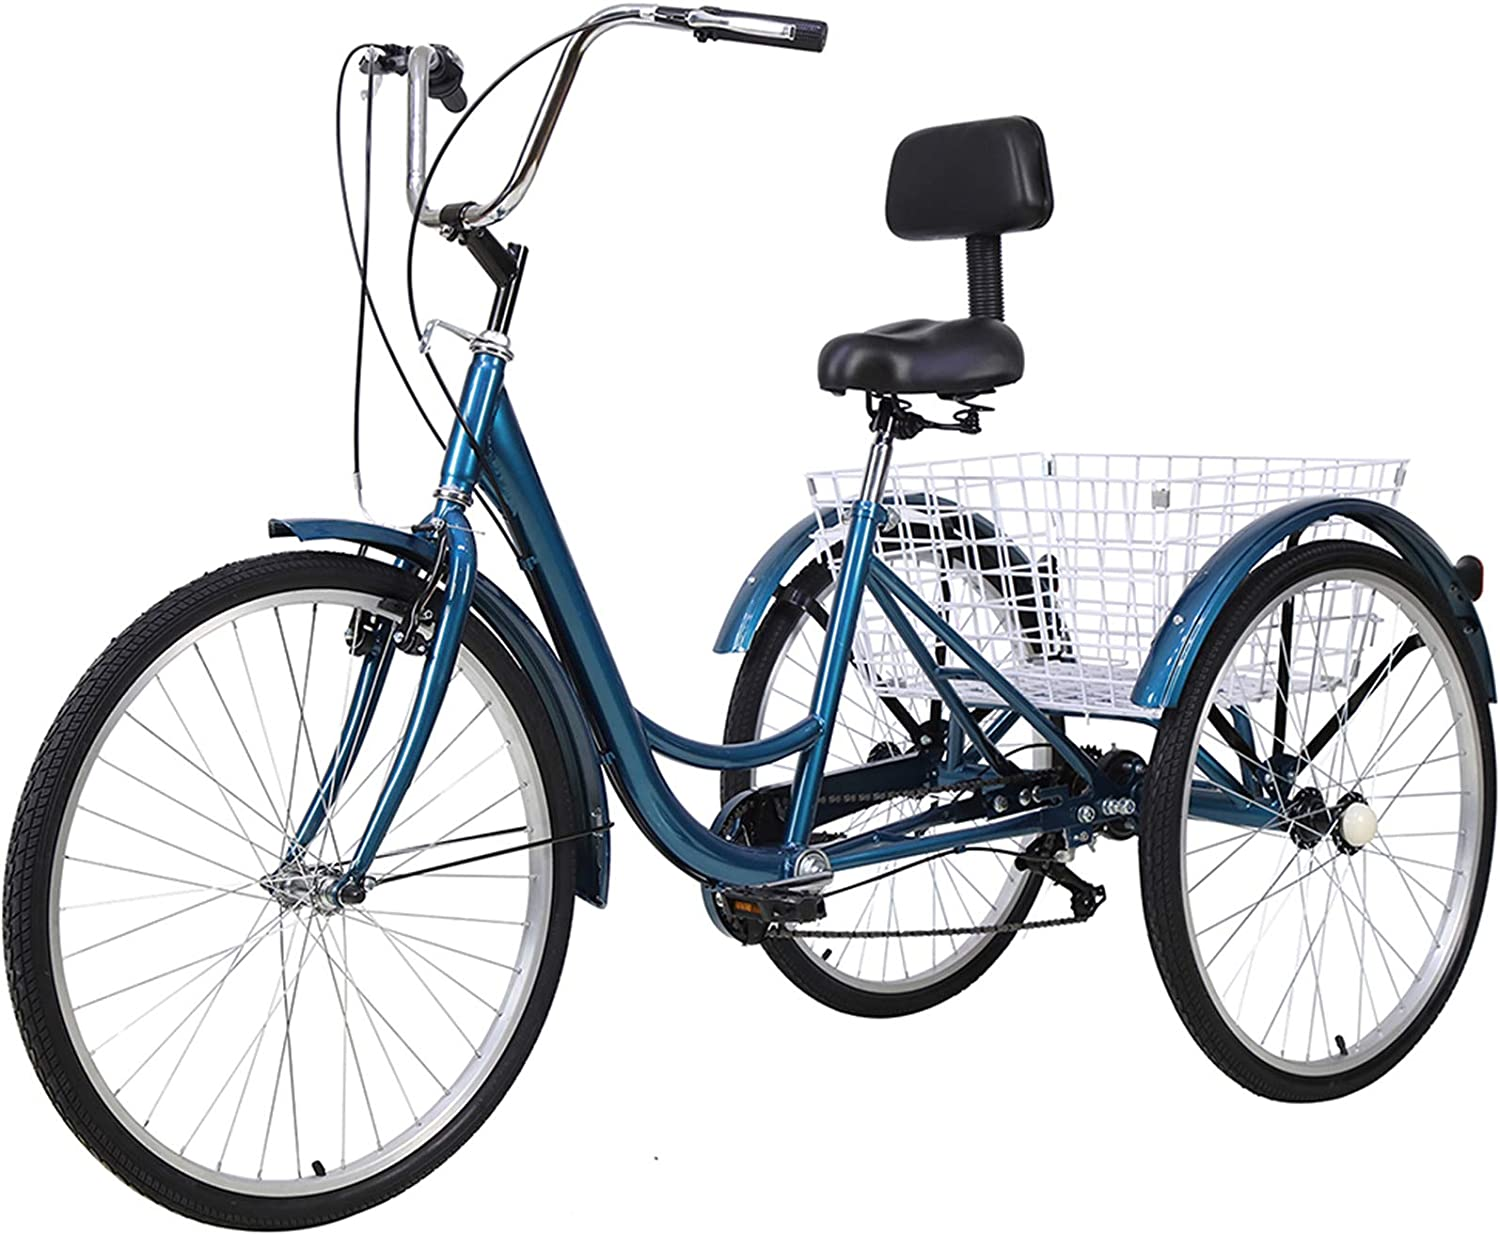 Slsy Adult Super intense SALE Tricycles 7 Speed Trikes 26 3 wholesale inch 24 Whe 20